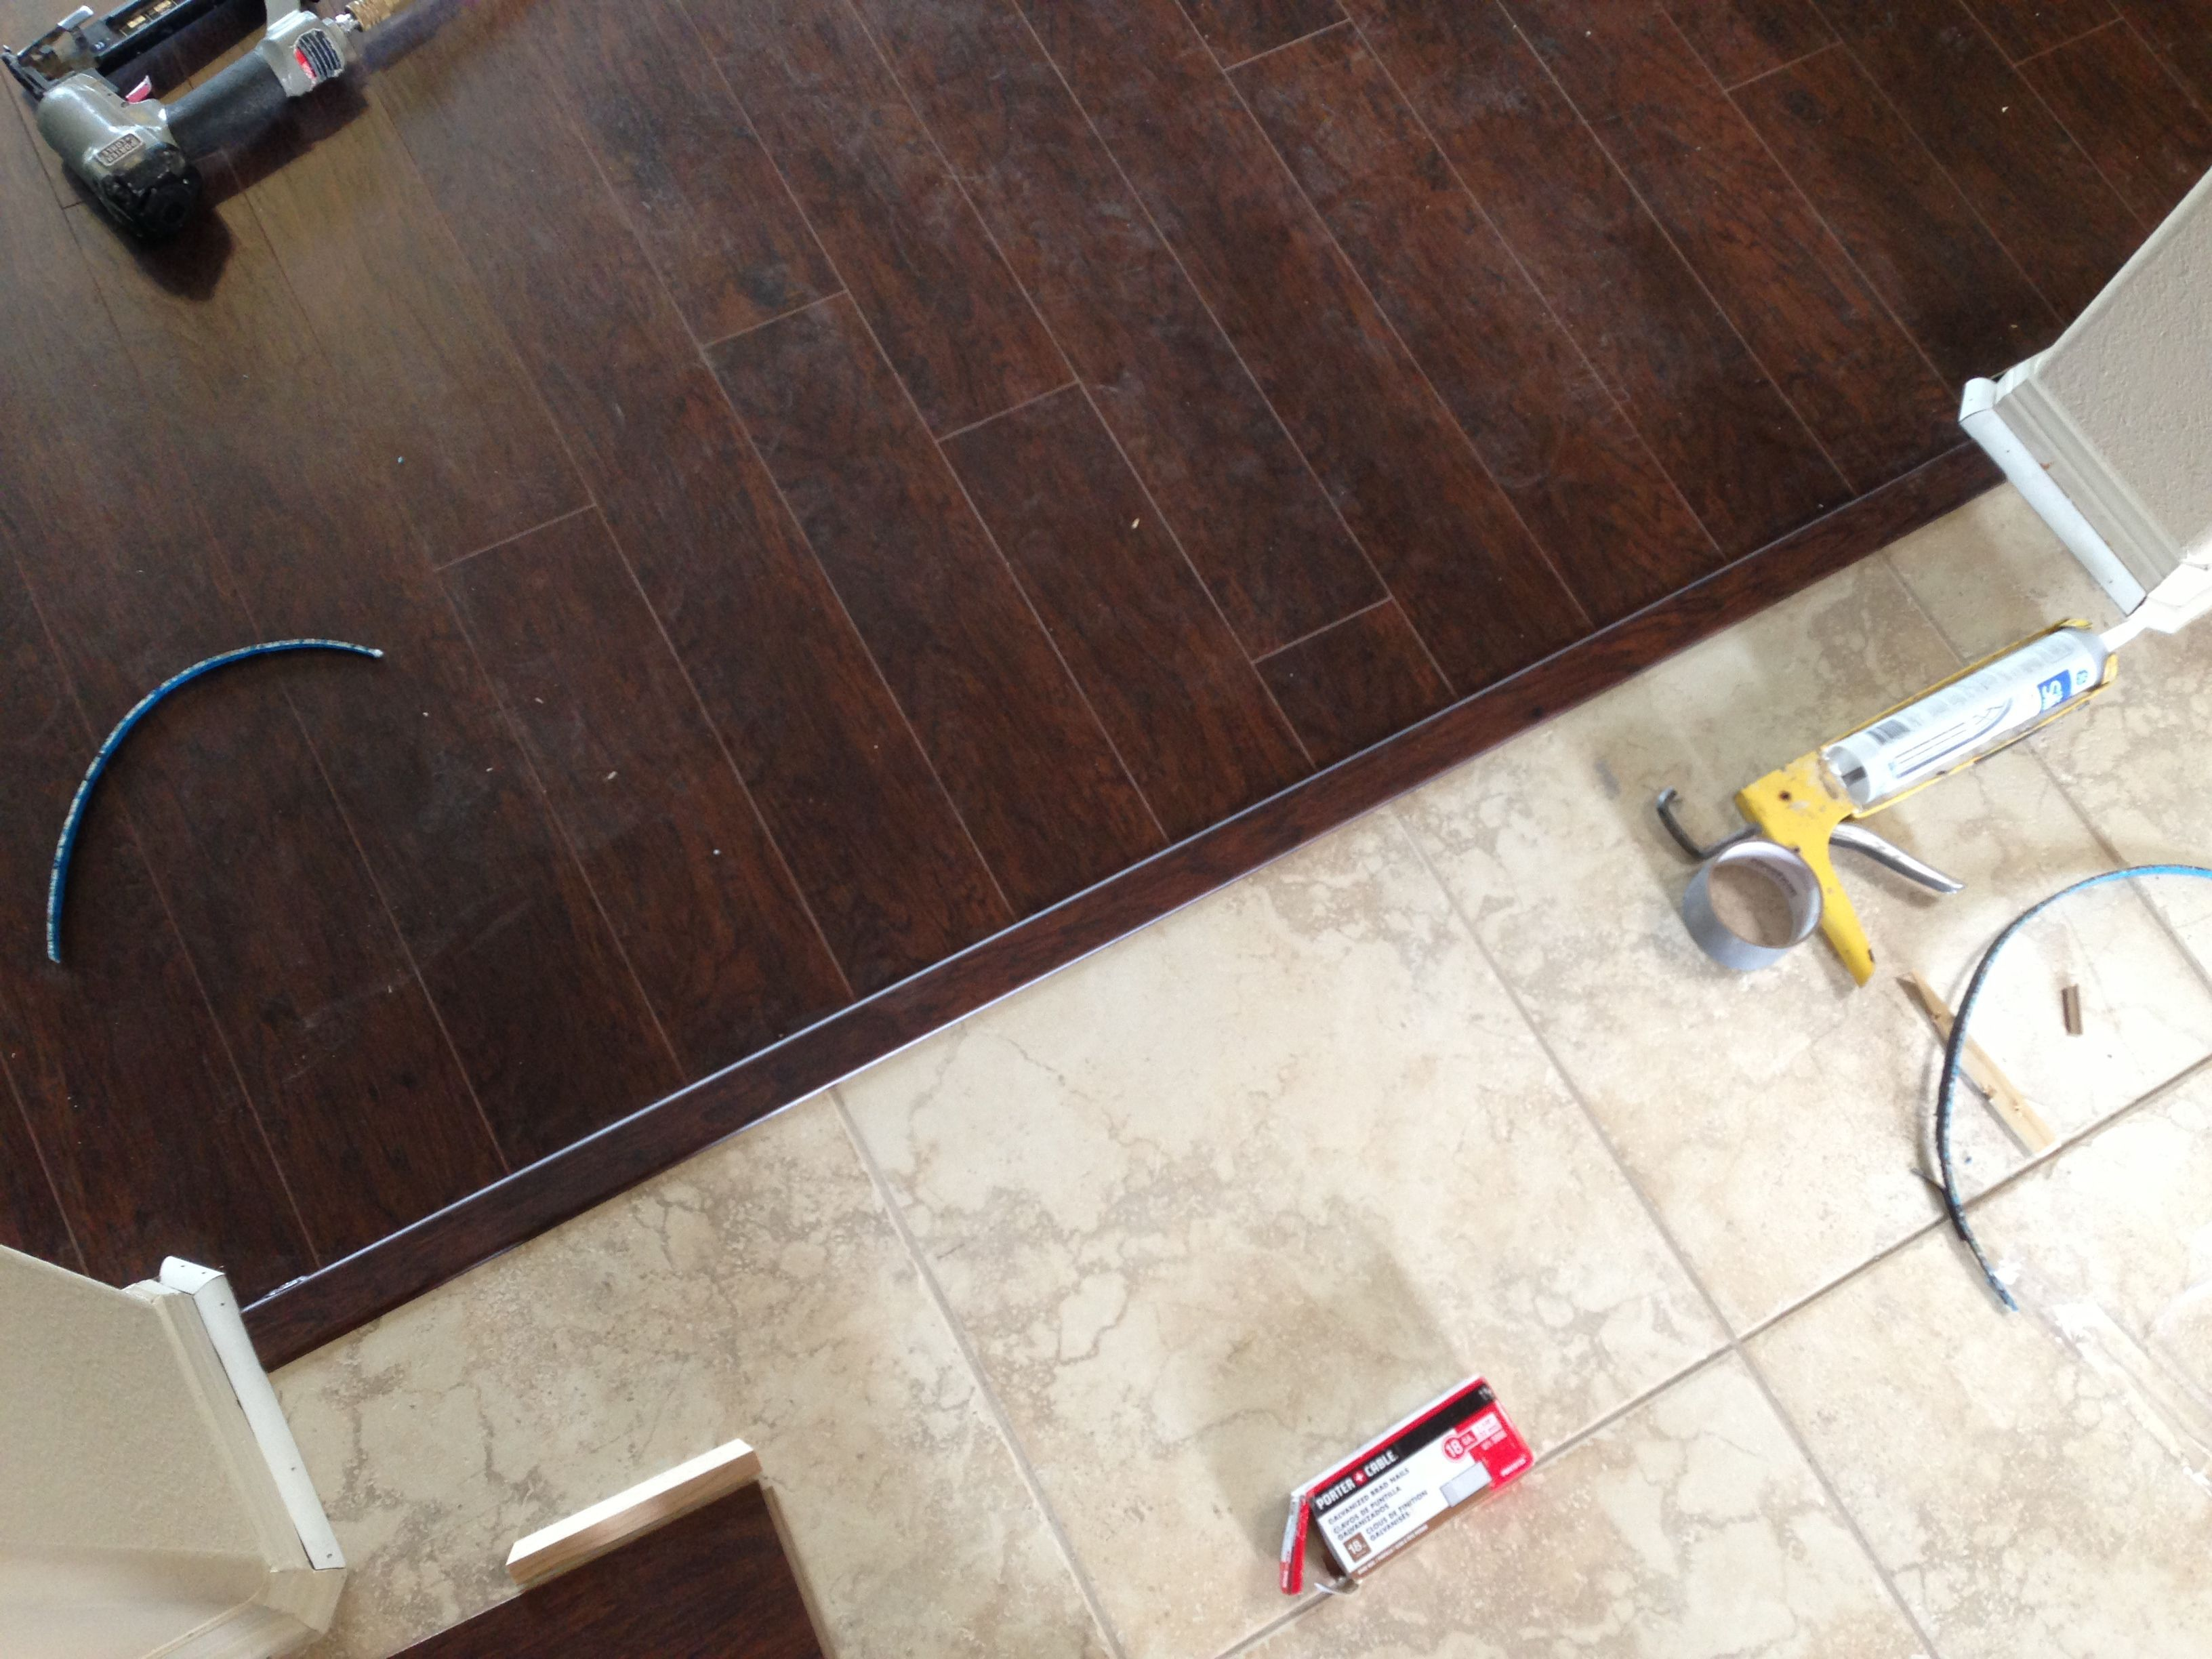 32+ Flooring transitions from wood to tile ideas